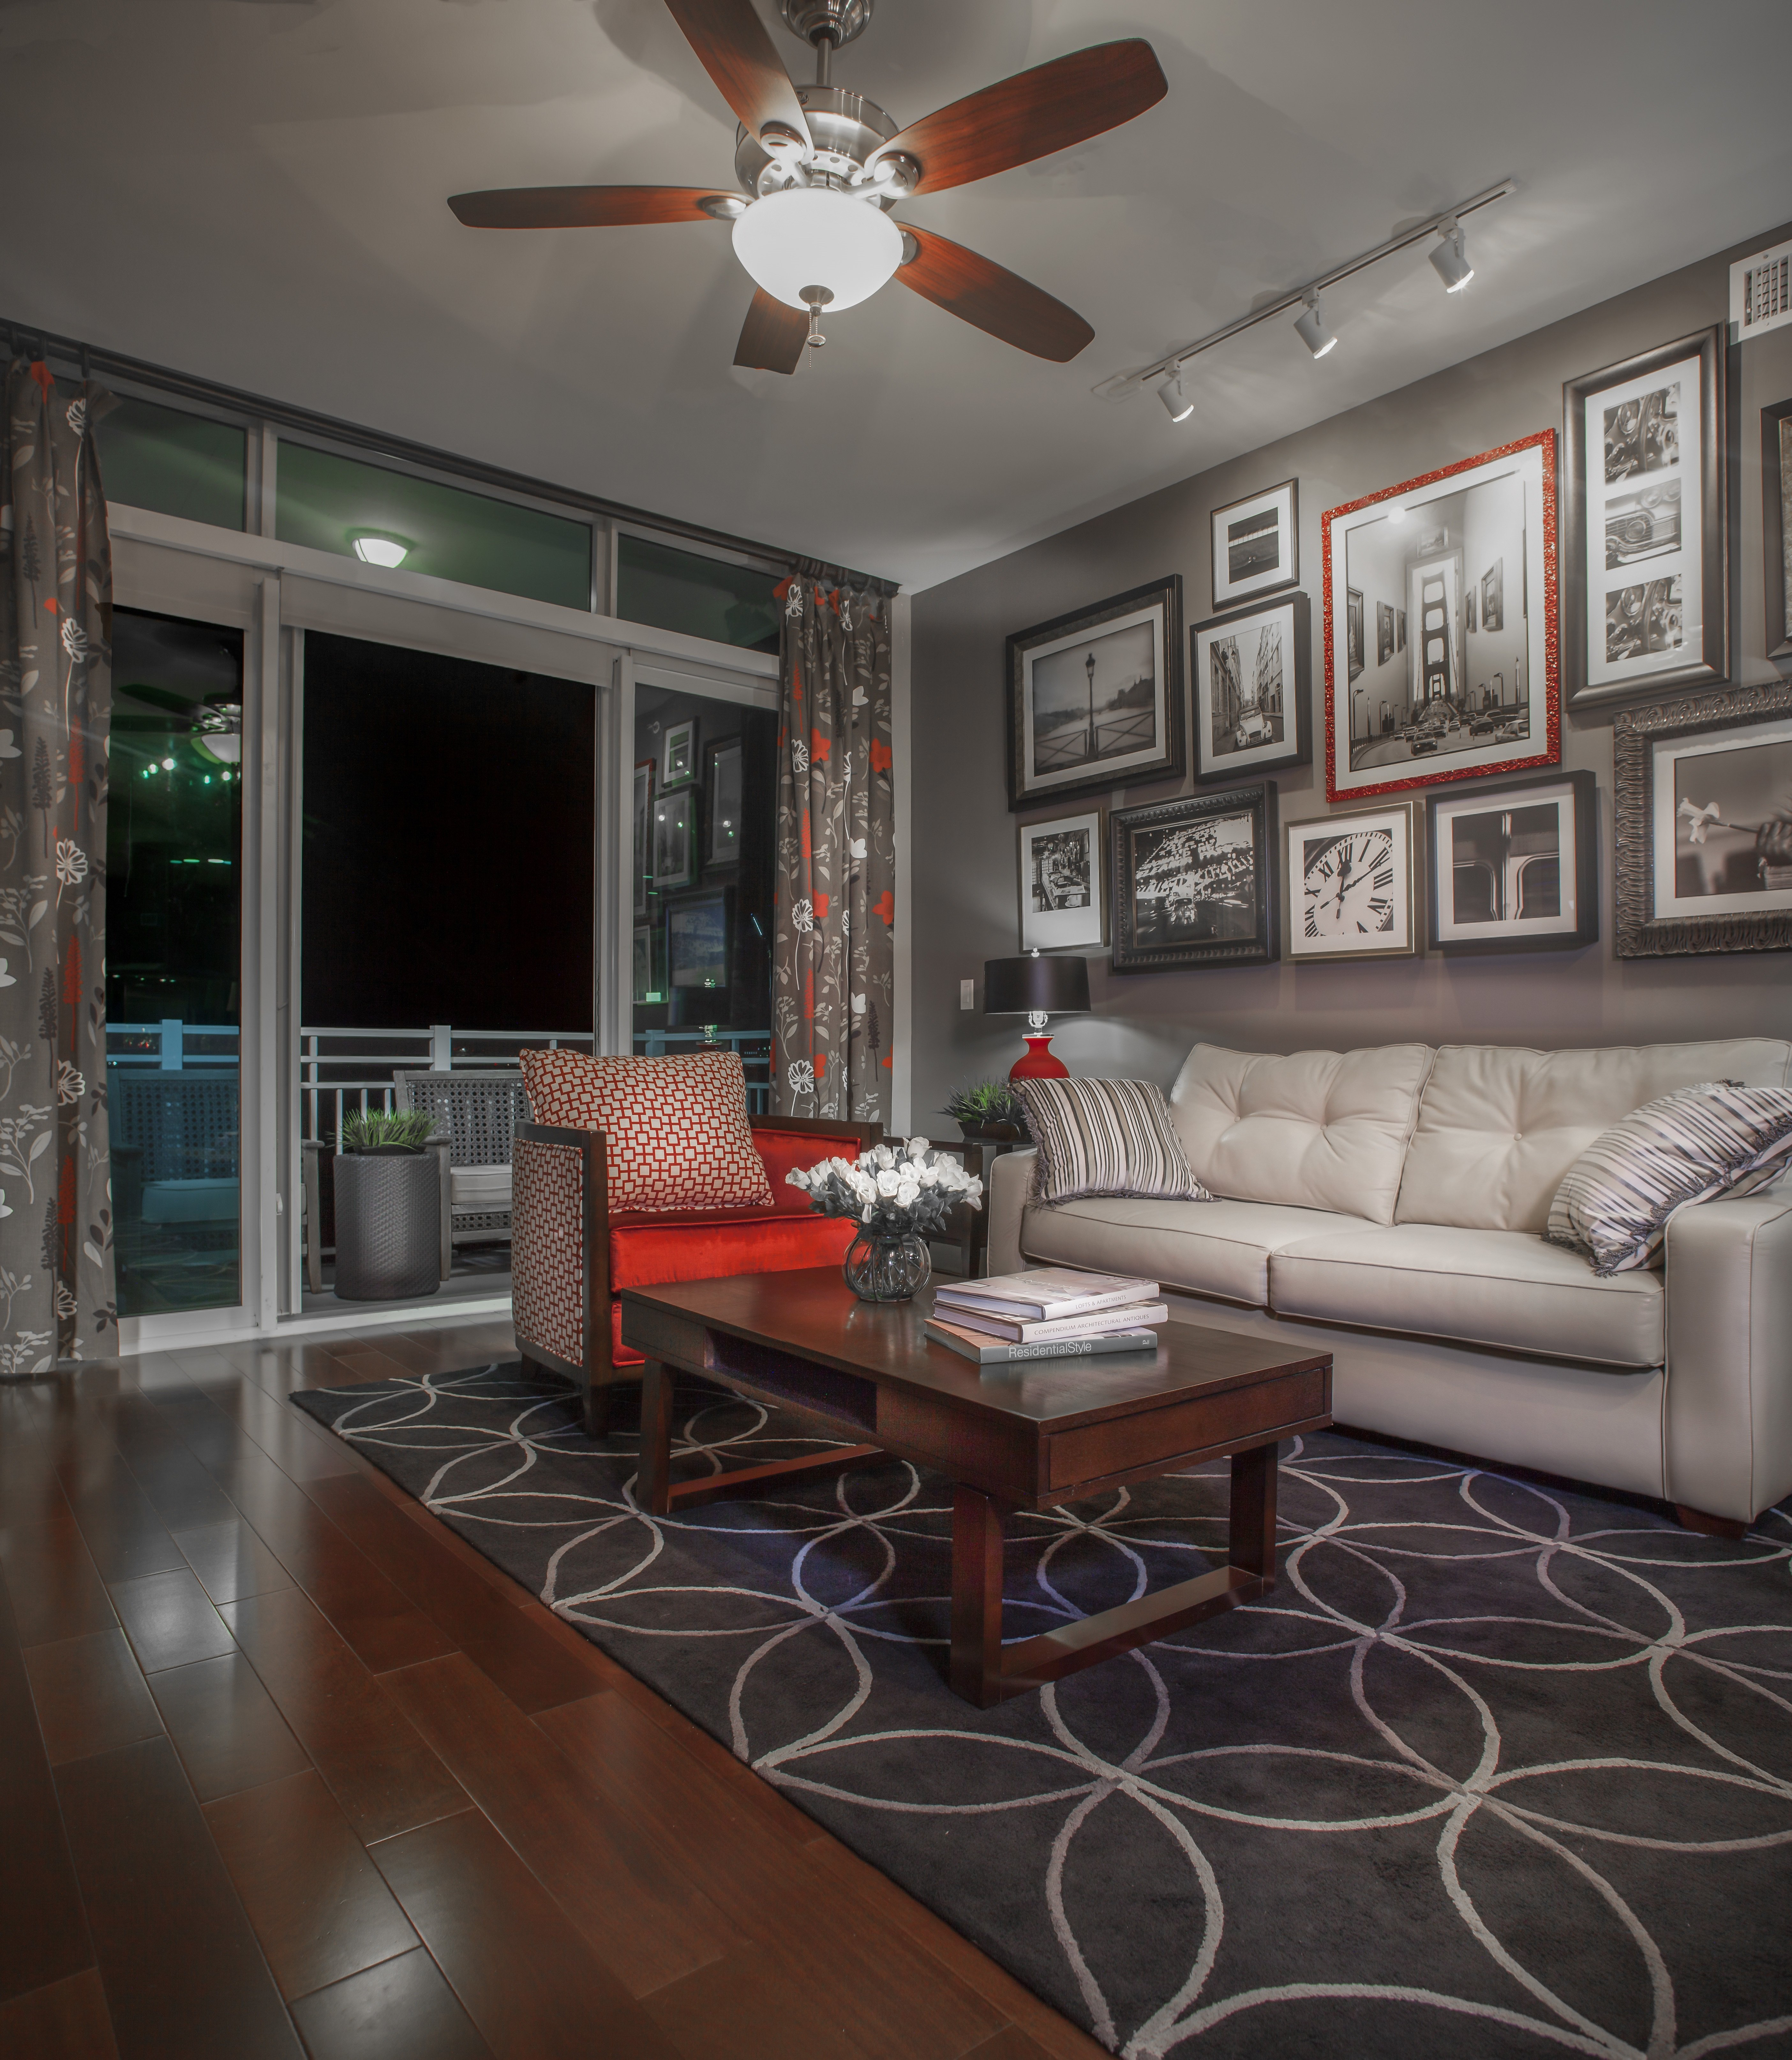 Fountains Apartments: Lincoln Property Company